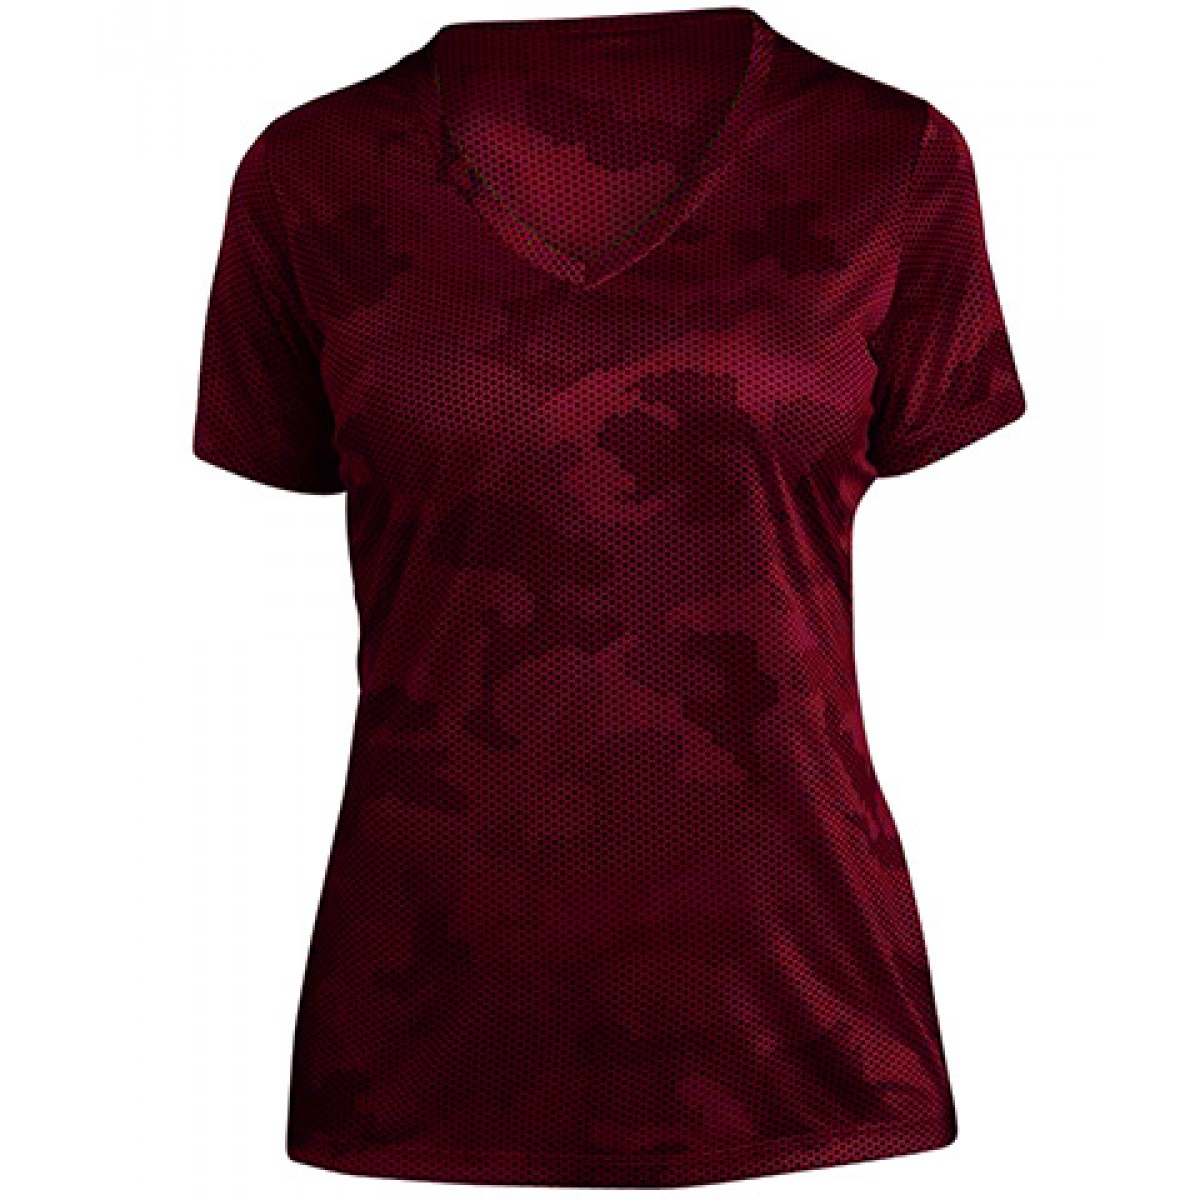 Ladies CamoHex V-Neck Tee-Red-XL